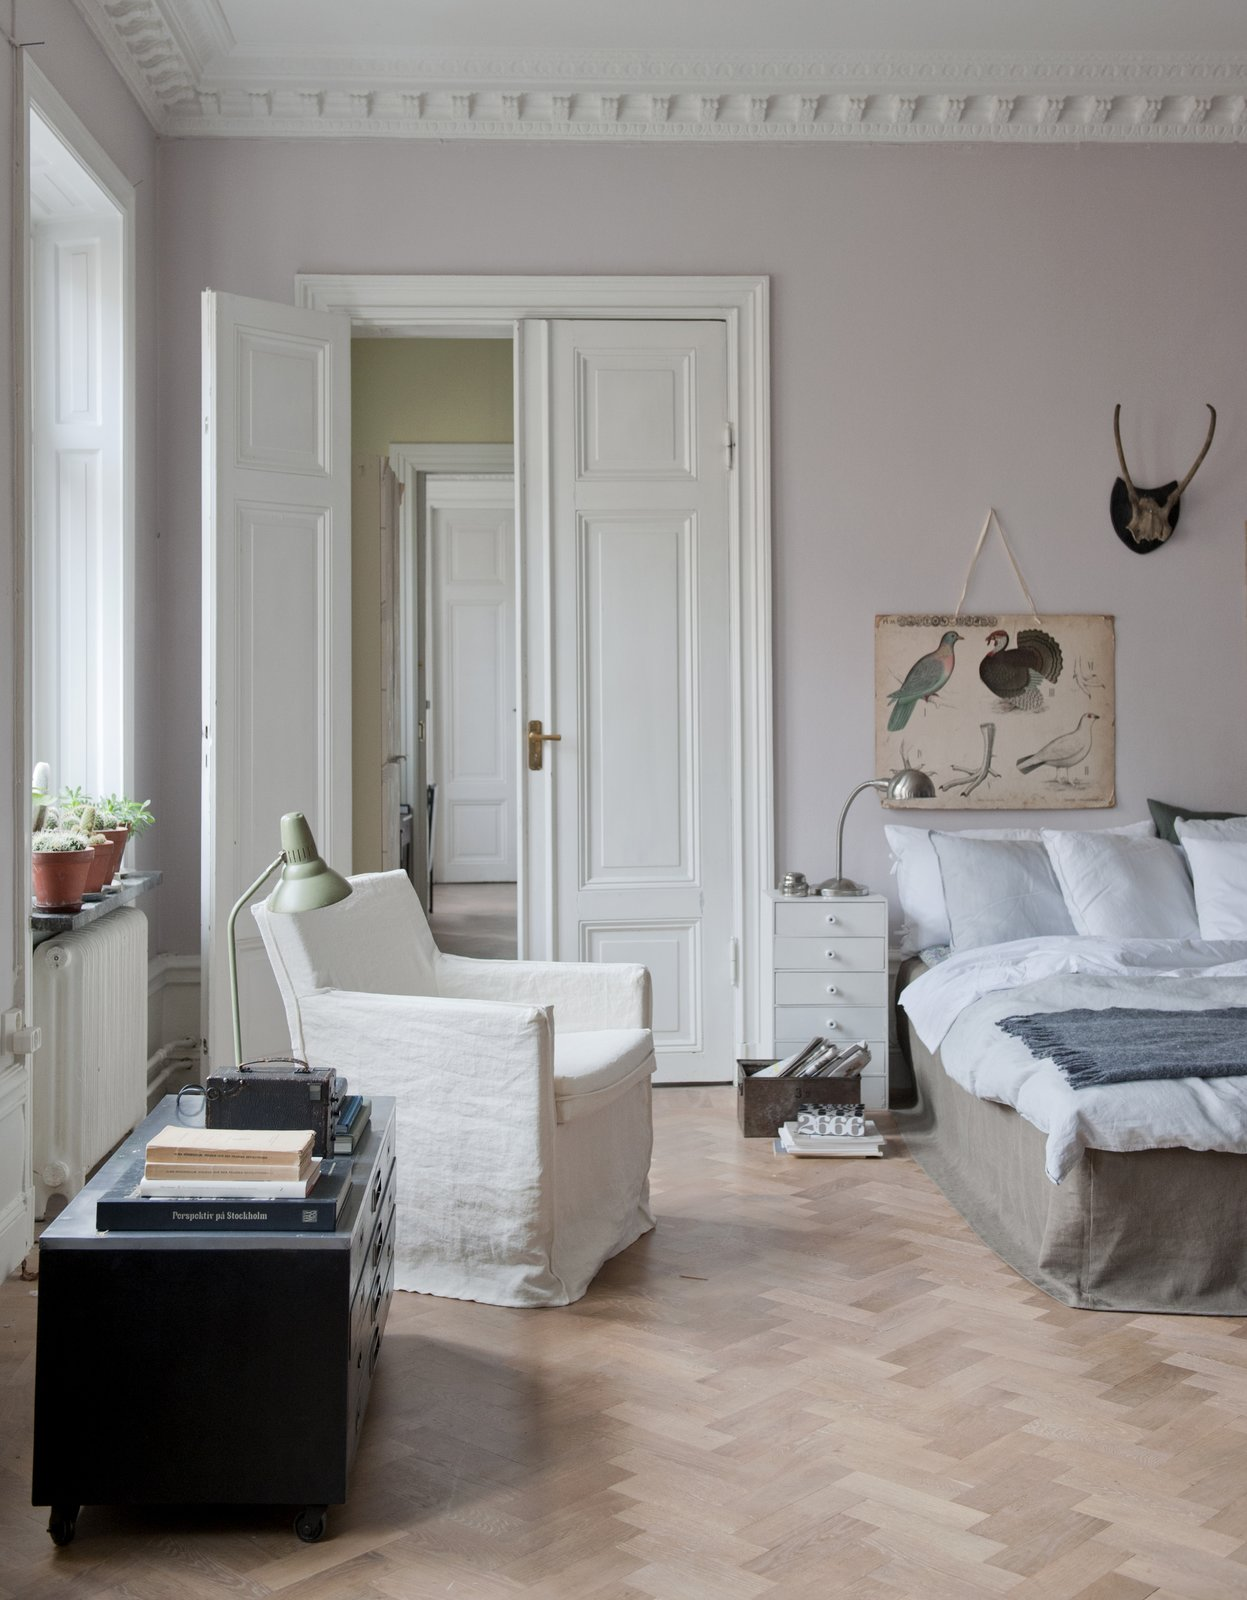 Photo 2 of 4 in Time to update your boudoir: styling tips for the bedroom